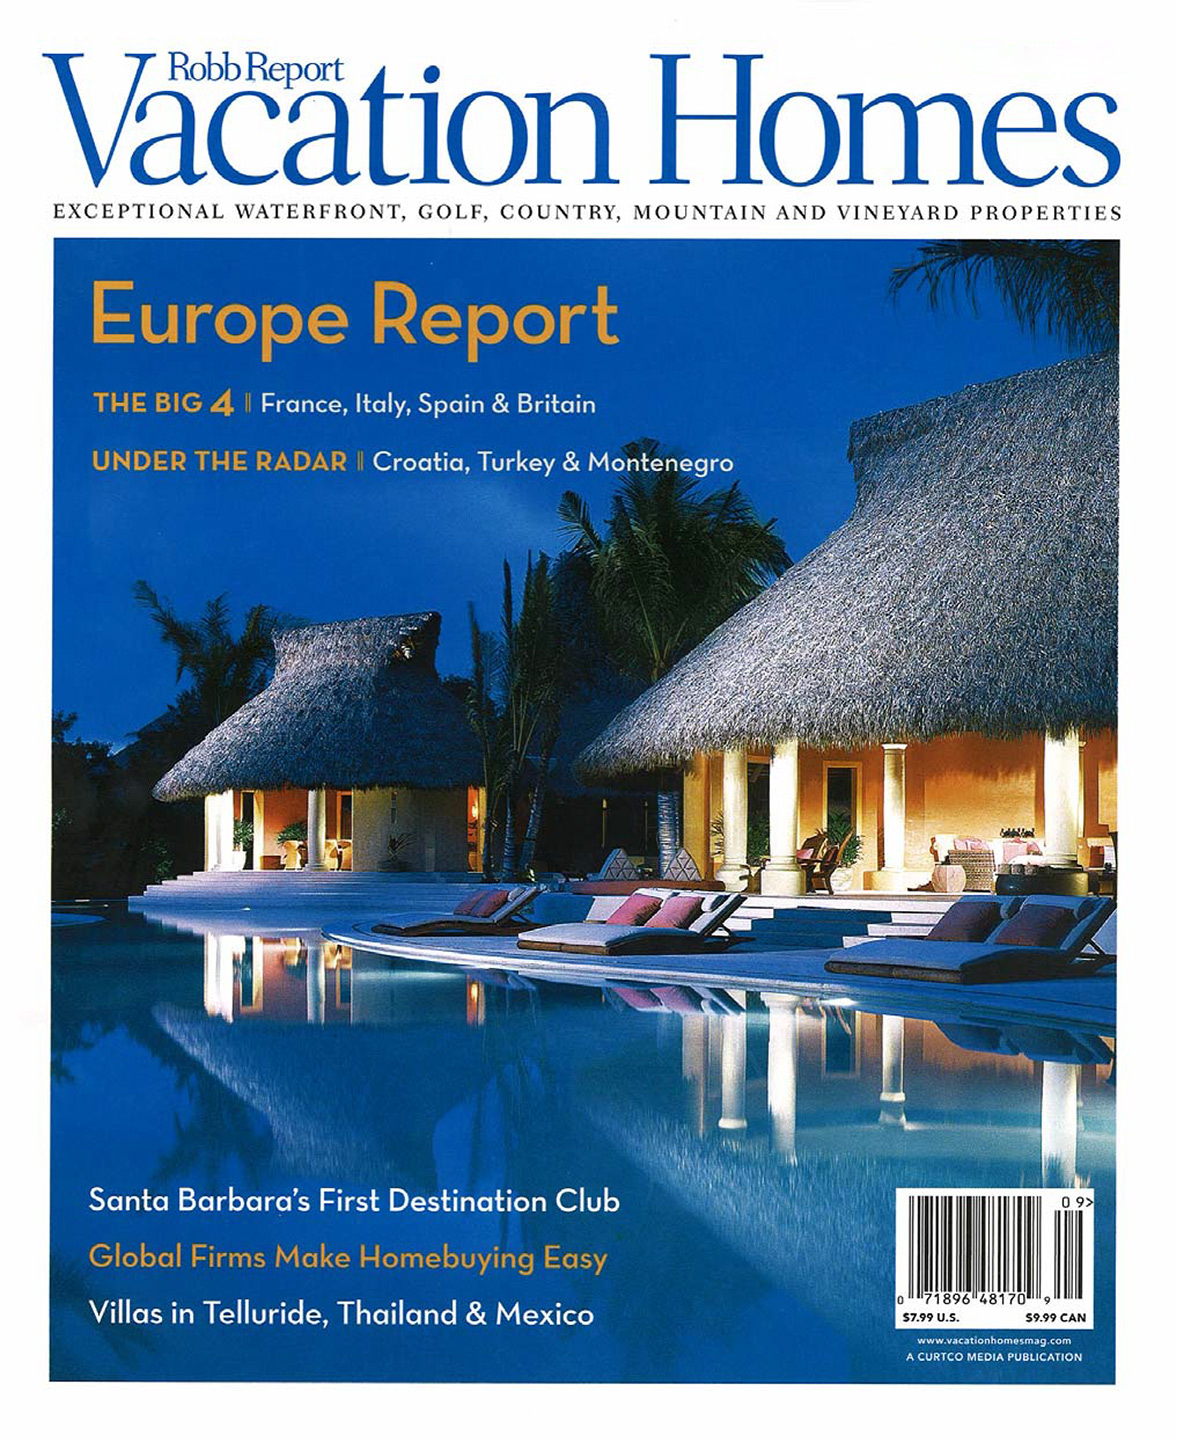 Microsoft Word - Robb Report 8-9.06 v.2.doc